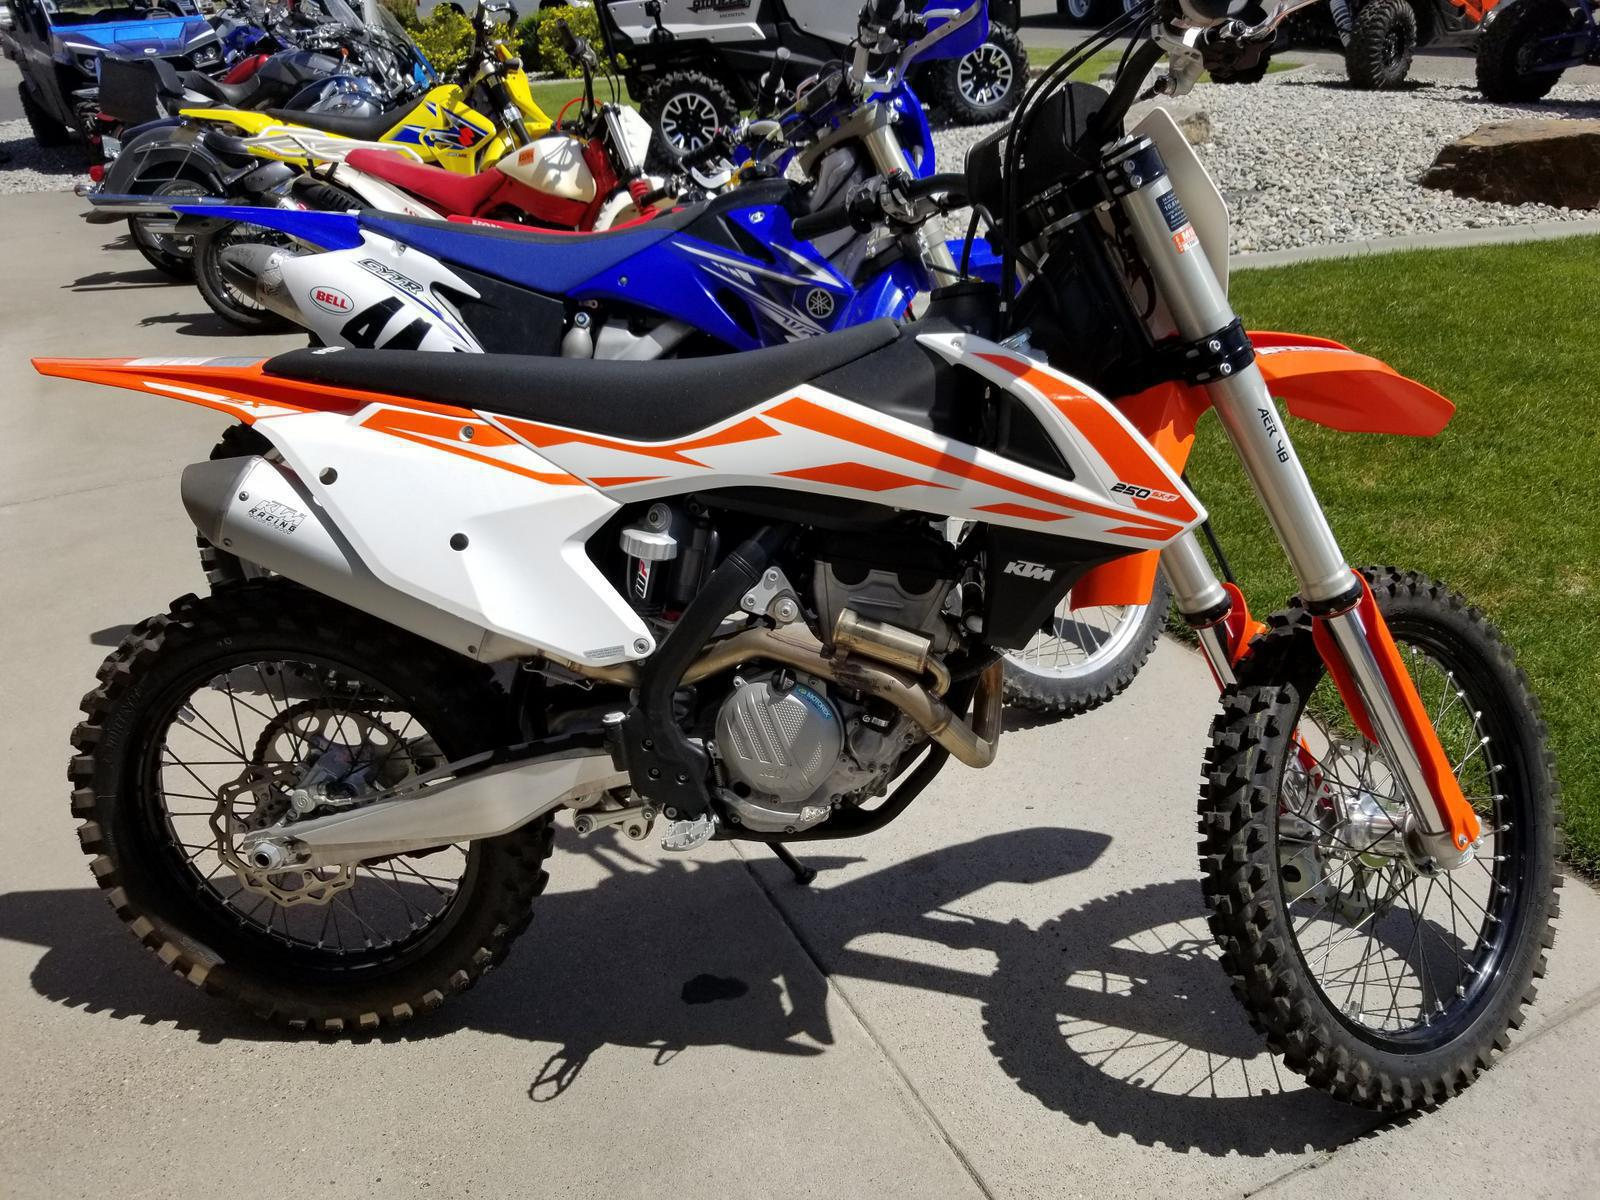 Inventory from KTM Adventure Motorsports Twin Falls, ID (208